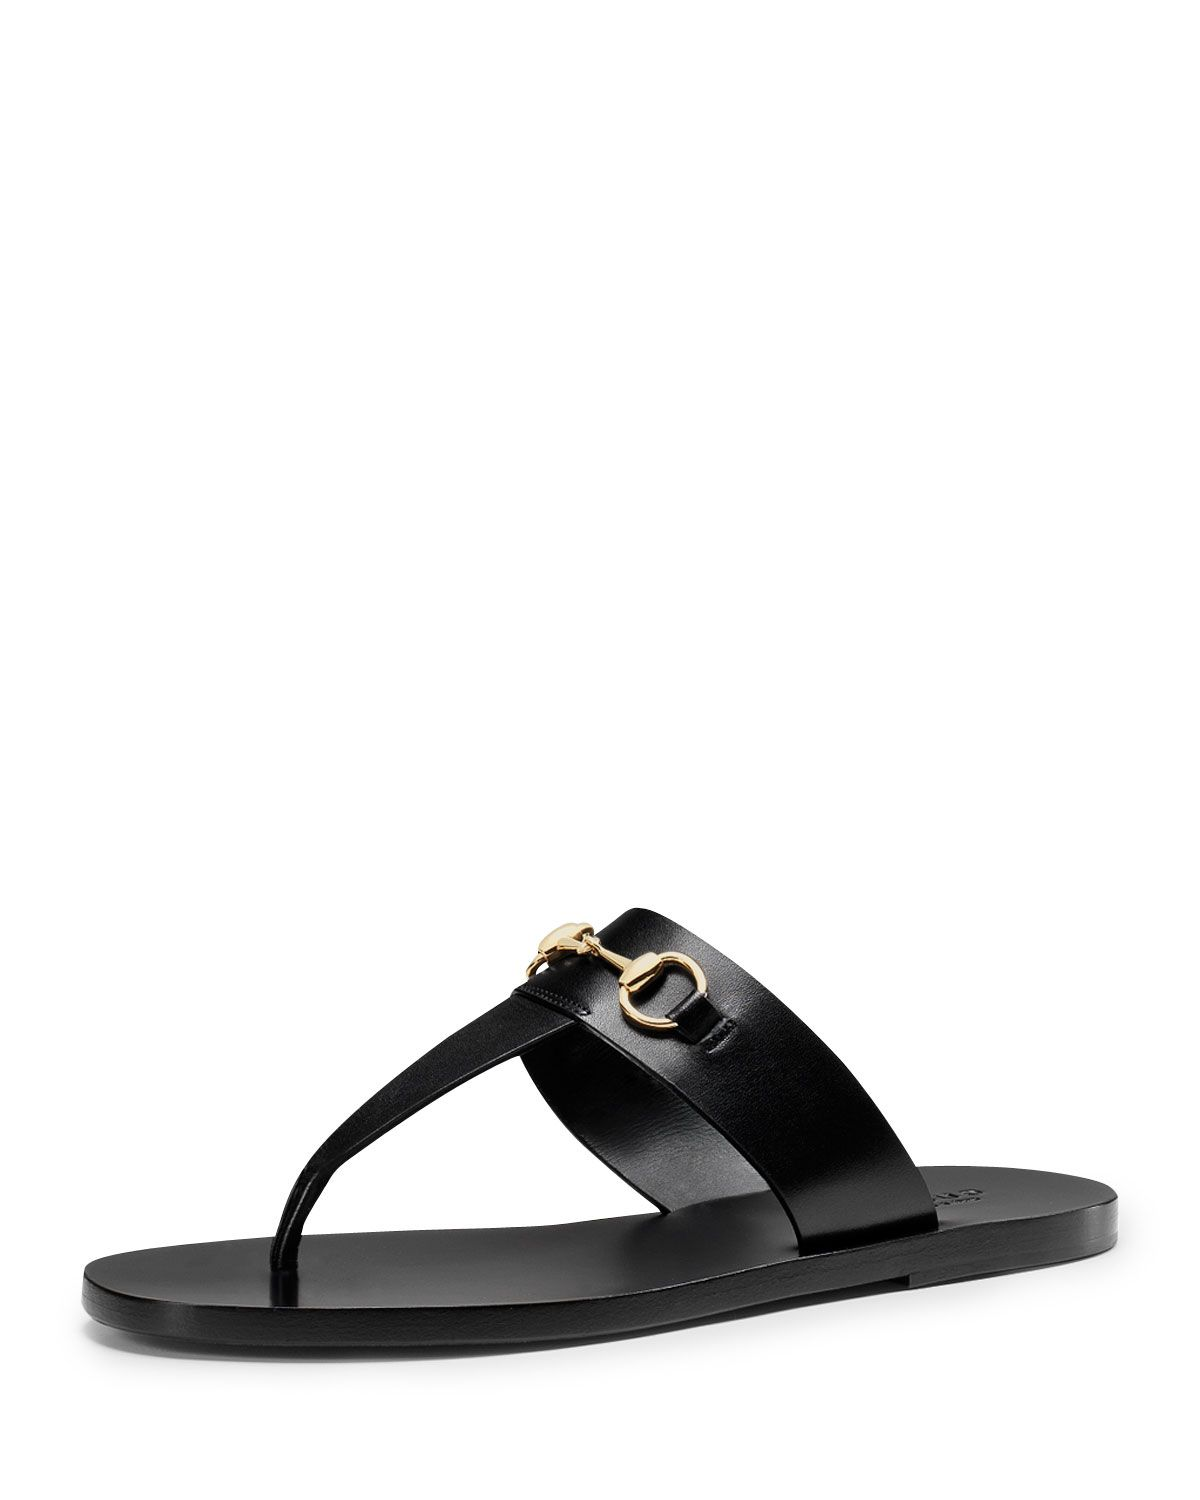 3e0f39f23fa Gucci Shoes for Women. Horsebit Flat Thong Sandal